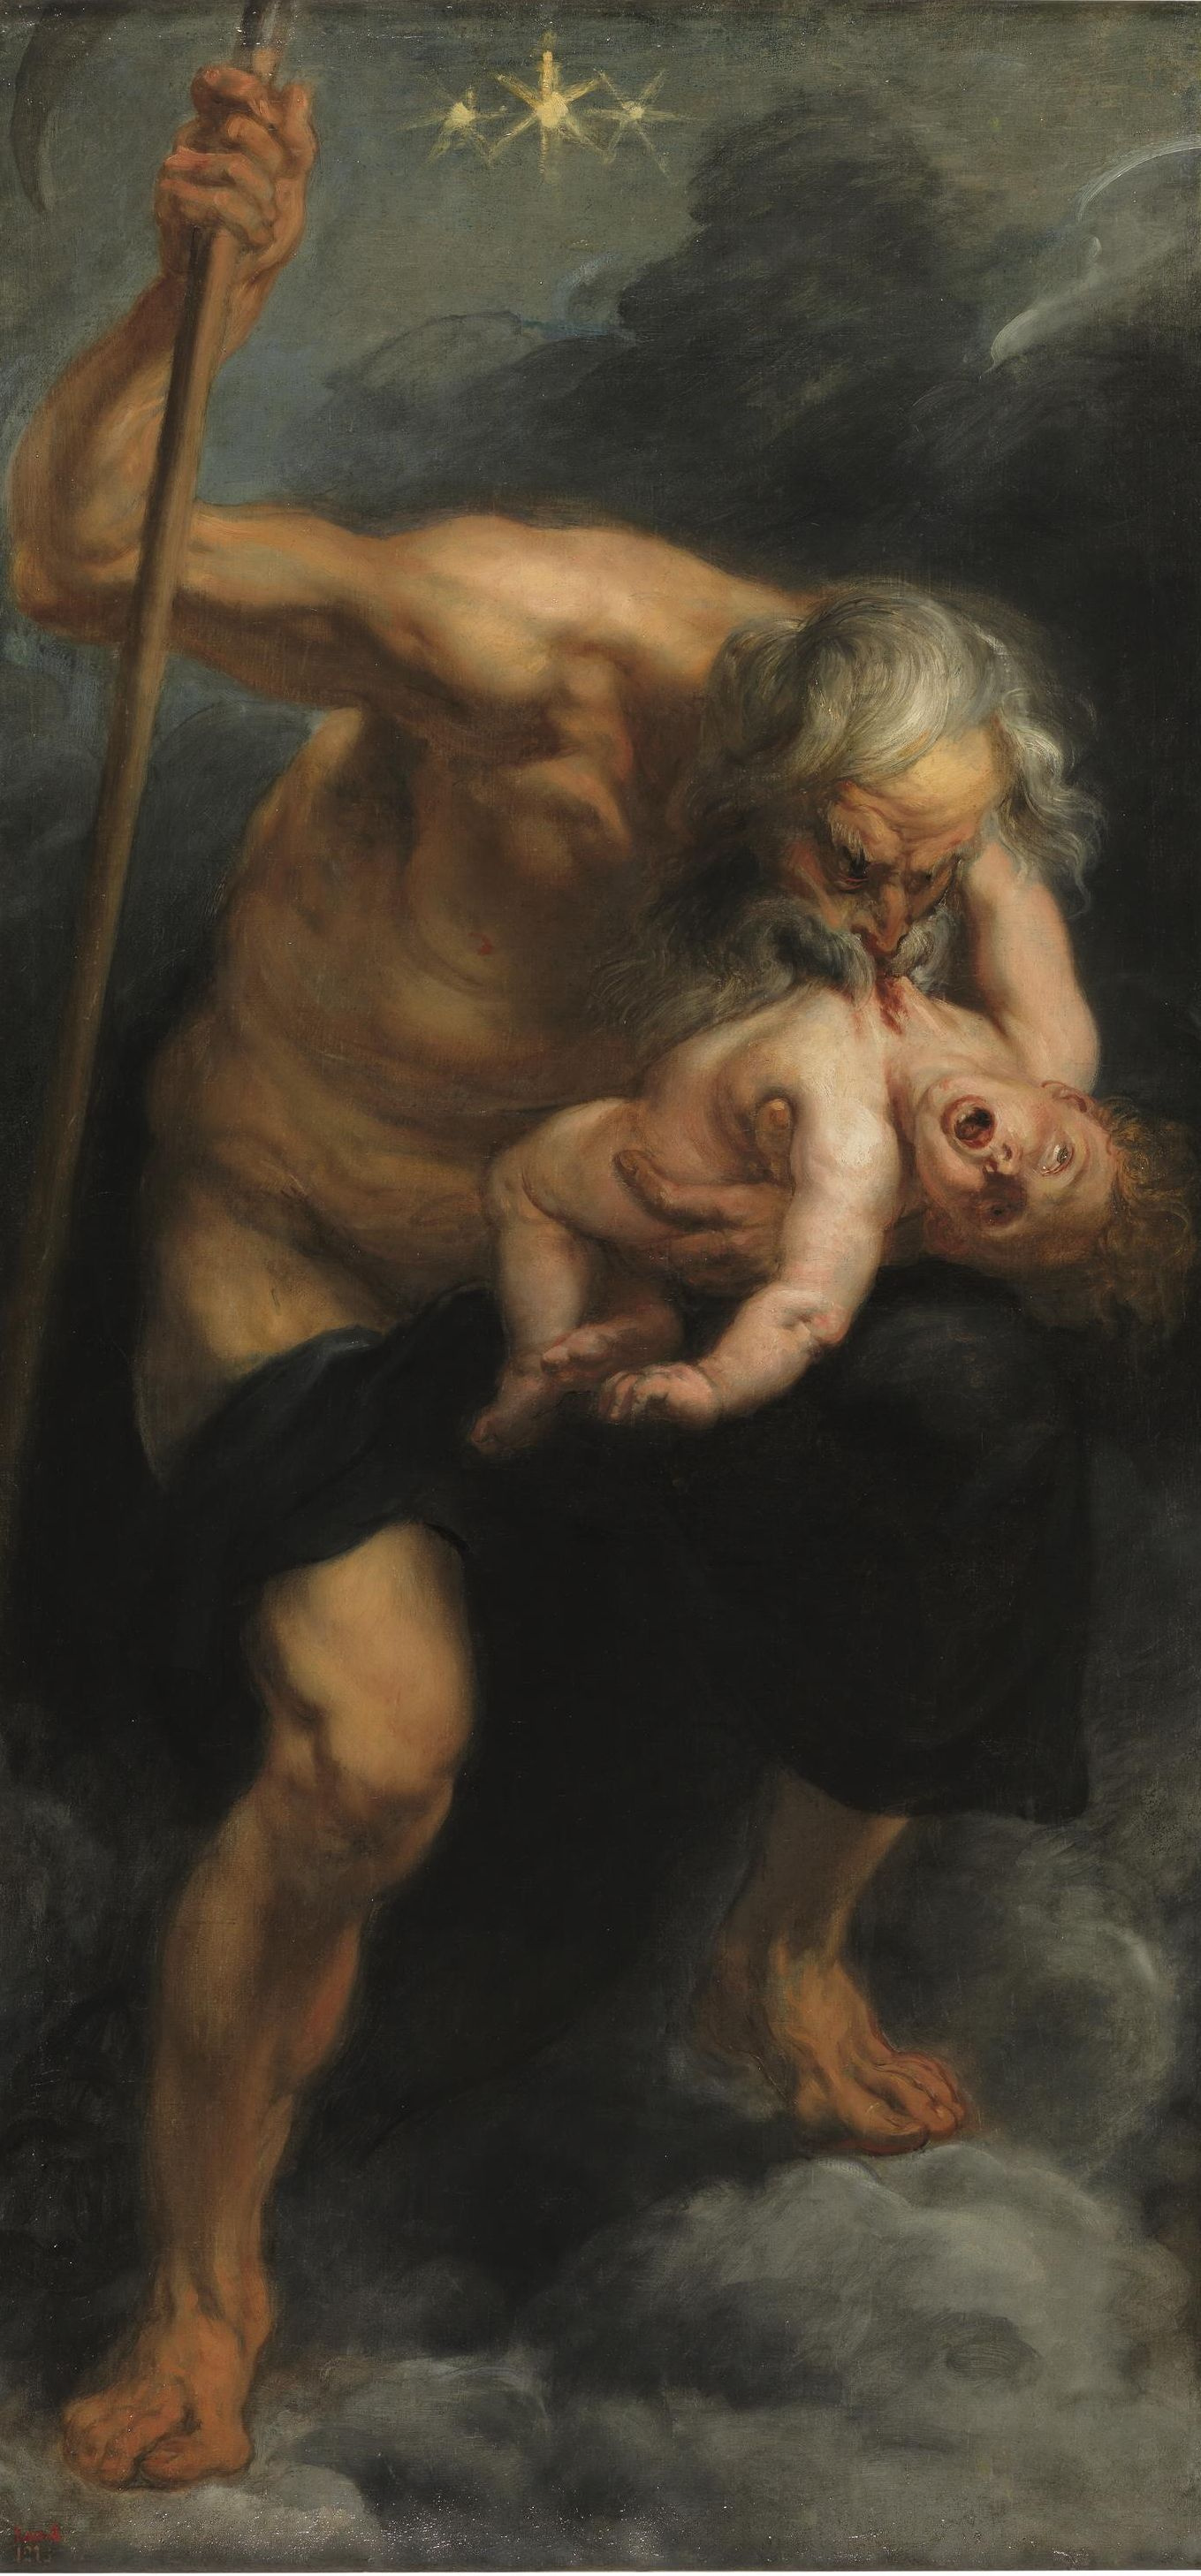 Peter Paul Rubens. Saturn devouring his son